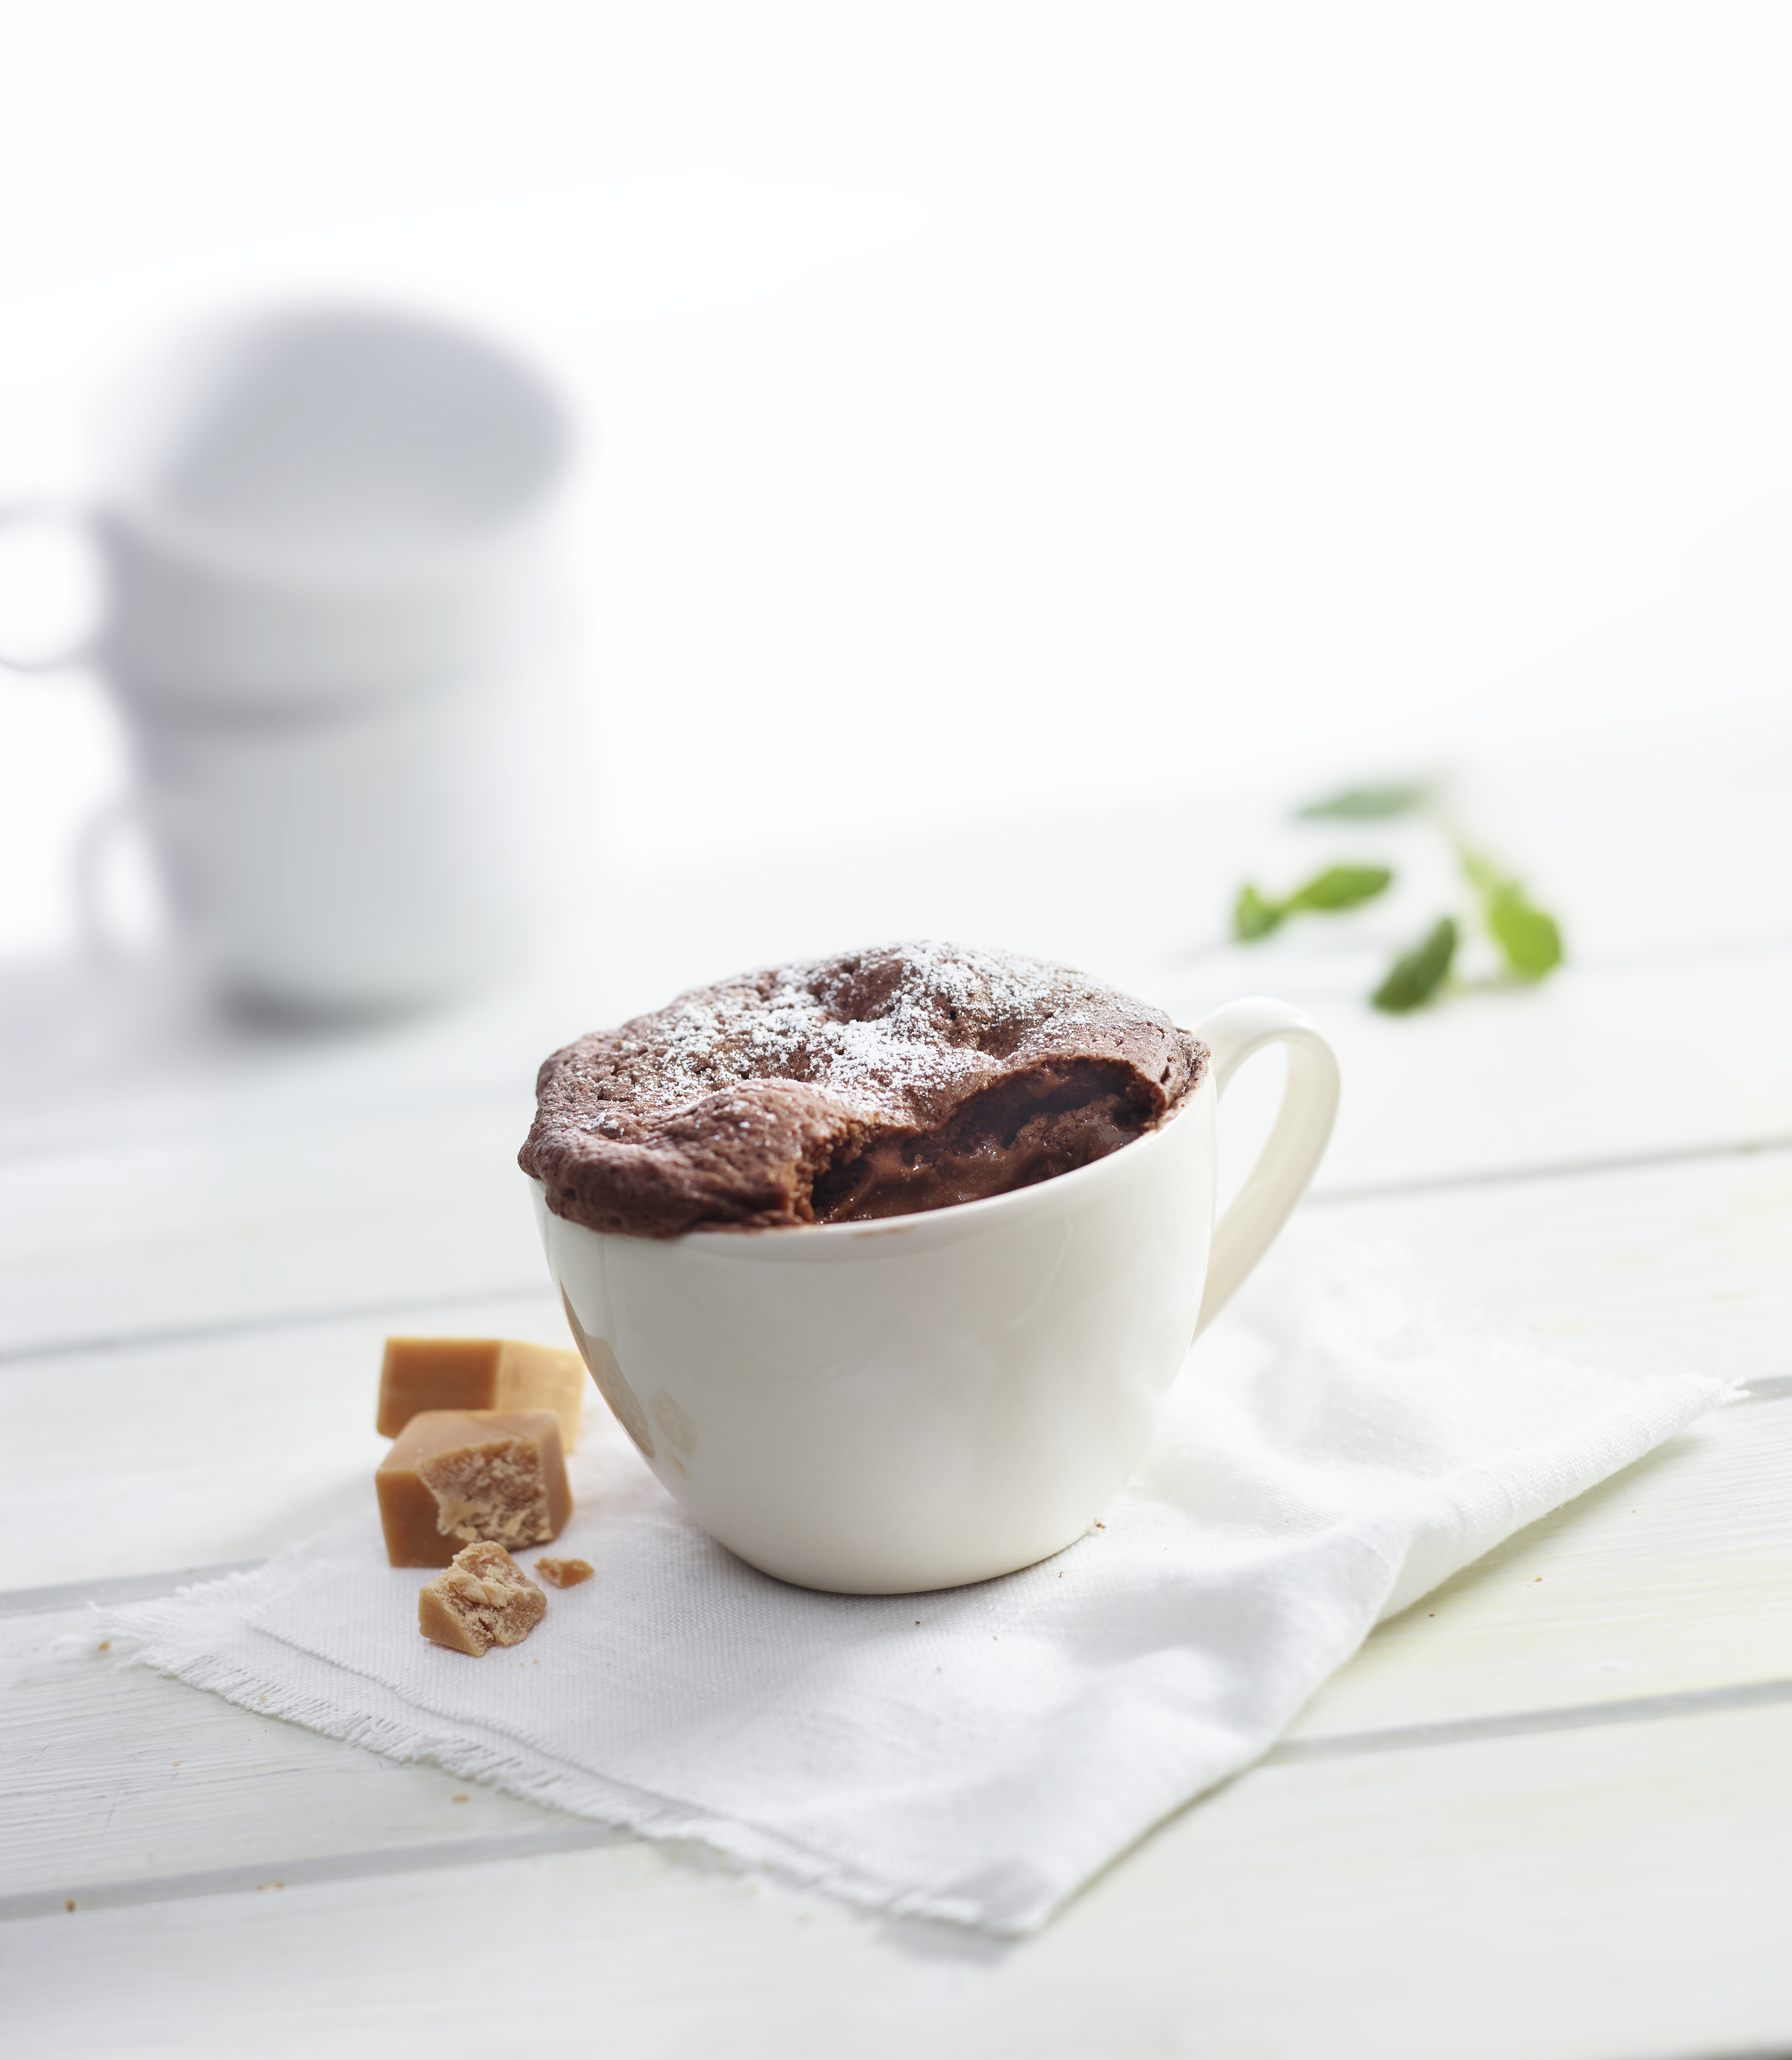 8d3b9908 ... Cake in a cup, Chocolate & Carame – finished cake